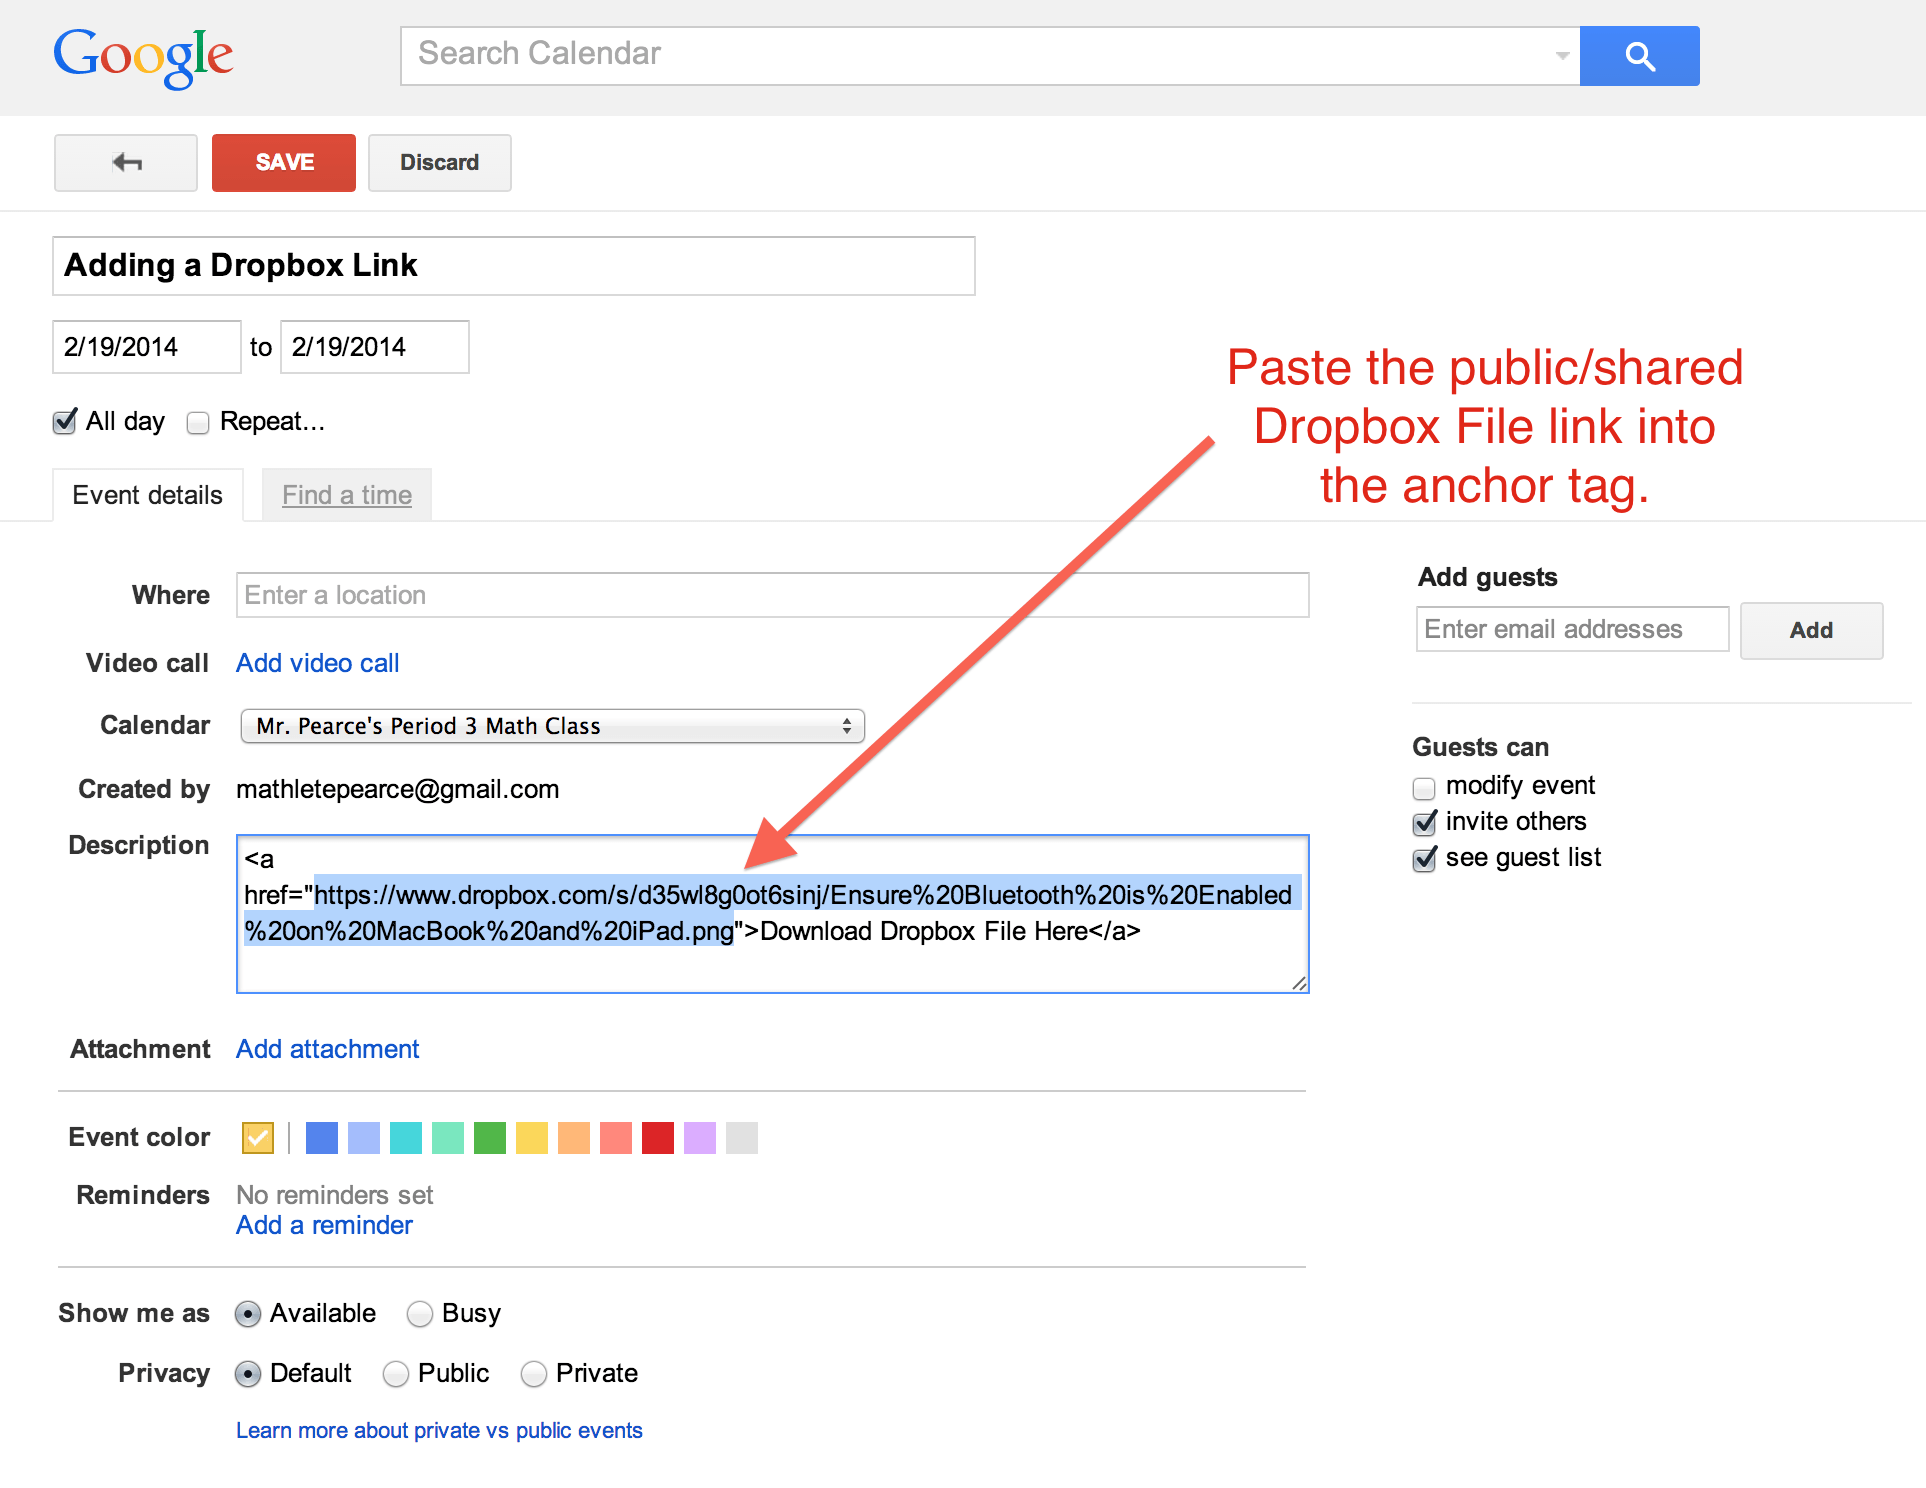 How to Link to Public/Shared Dropbox Files With Google Calendar